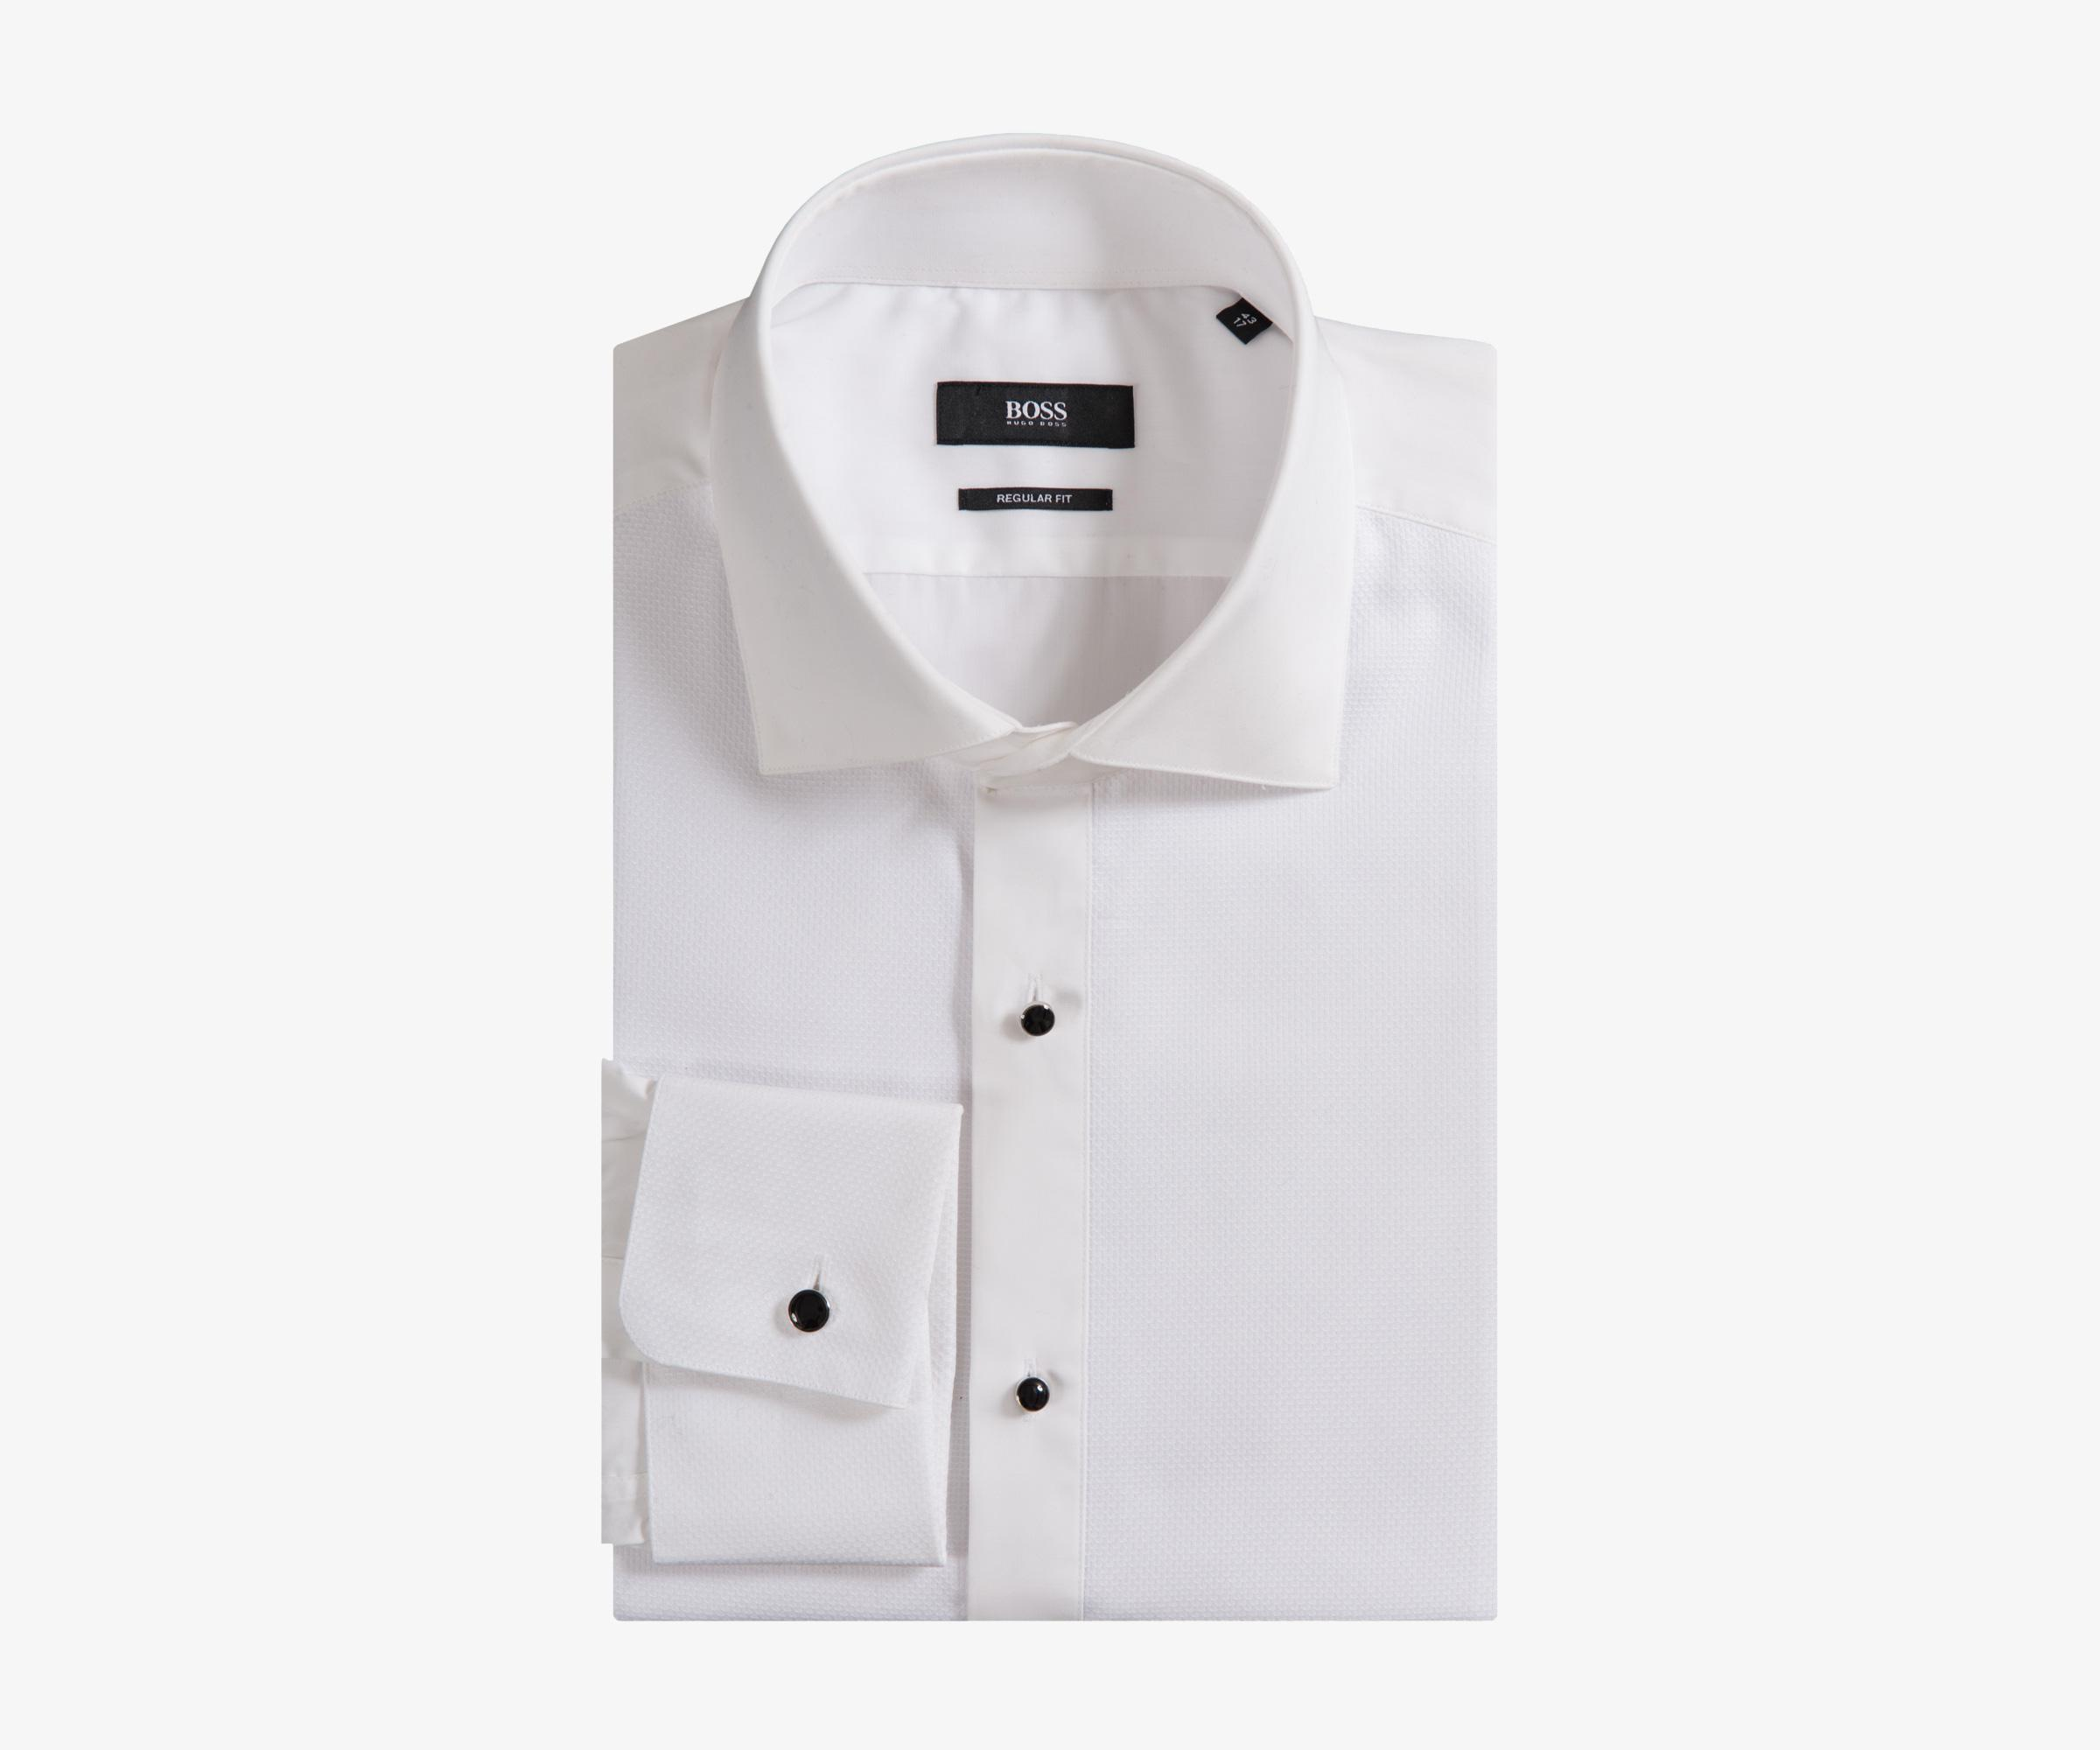 4937b4e5 BOSS 'gustavo' Evening Double Cuff Dress Shirt White in White for ...